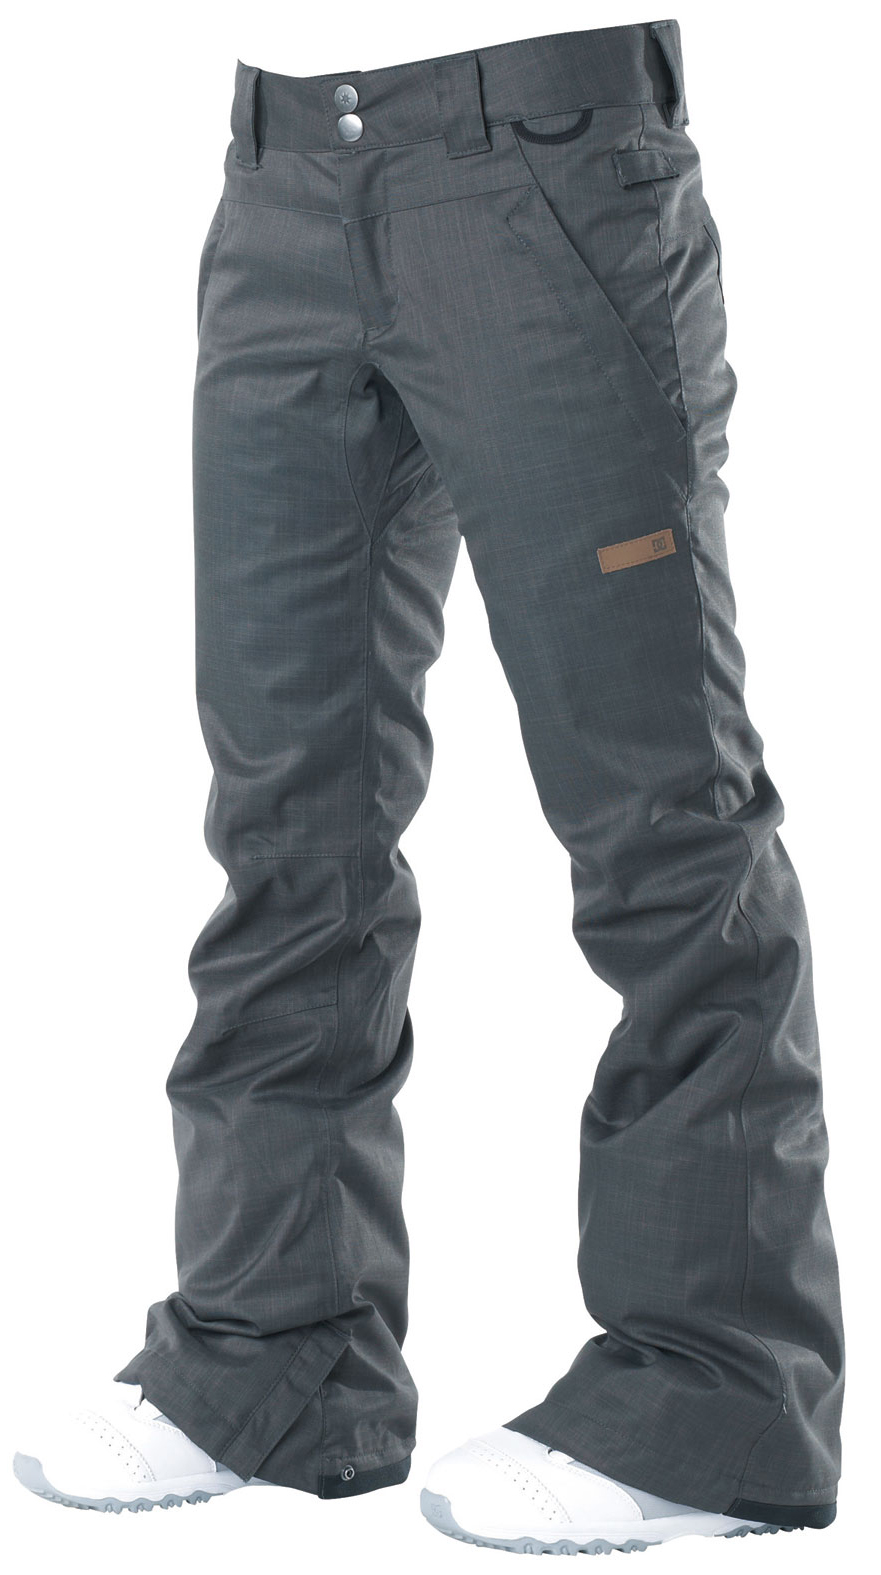 Snowboard With subtle cargo pockets, clean yet modern design, the ace pant is filled with all of dc's standard features. The added insulation will keep you warm in the coldest of climates. Available in both standard and tailored fits.Key Features of the DC Ace Snowboard Pants: 5,000mm waterproof 5,000g breathability Fit: standard 100% polyester micro twill midweight Critically taped seams 40g polyinsulation Taffeta lining Mesh lined venting Shant control Boot gaiter Snapped hem boot gusset Lift pass hook - $69.95